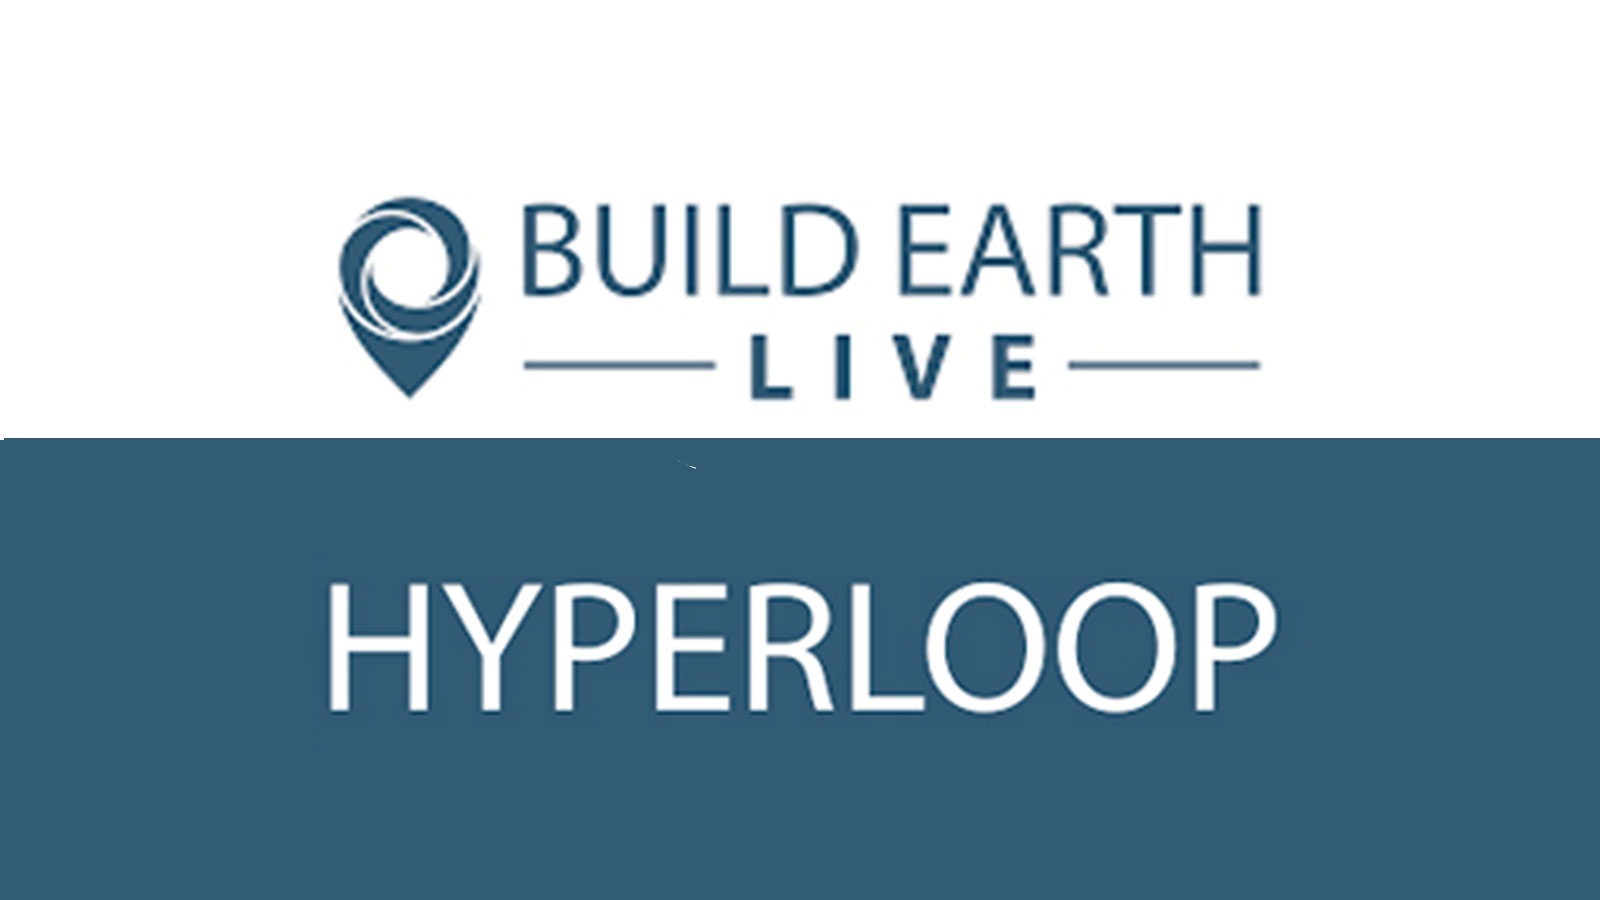 Build Earth Live Hyperloop